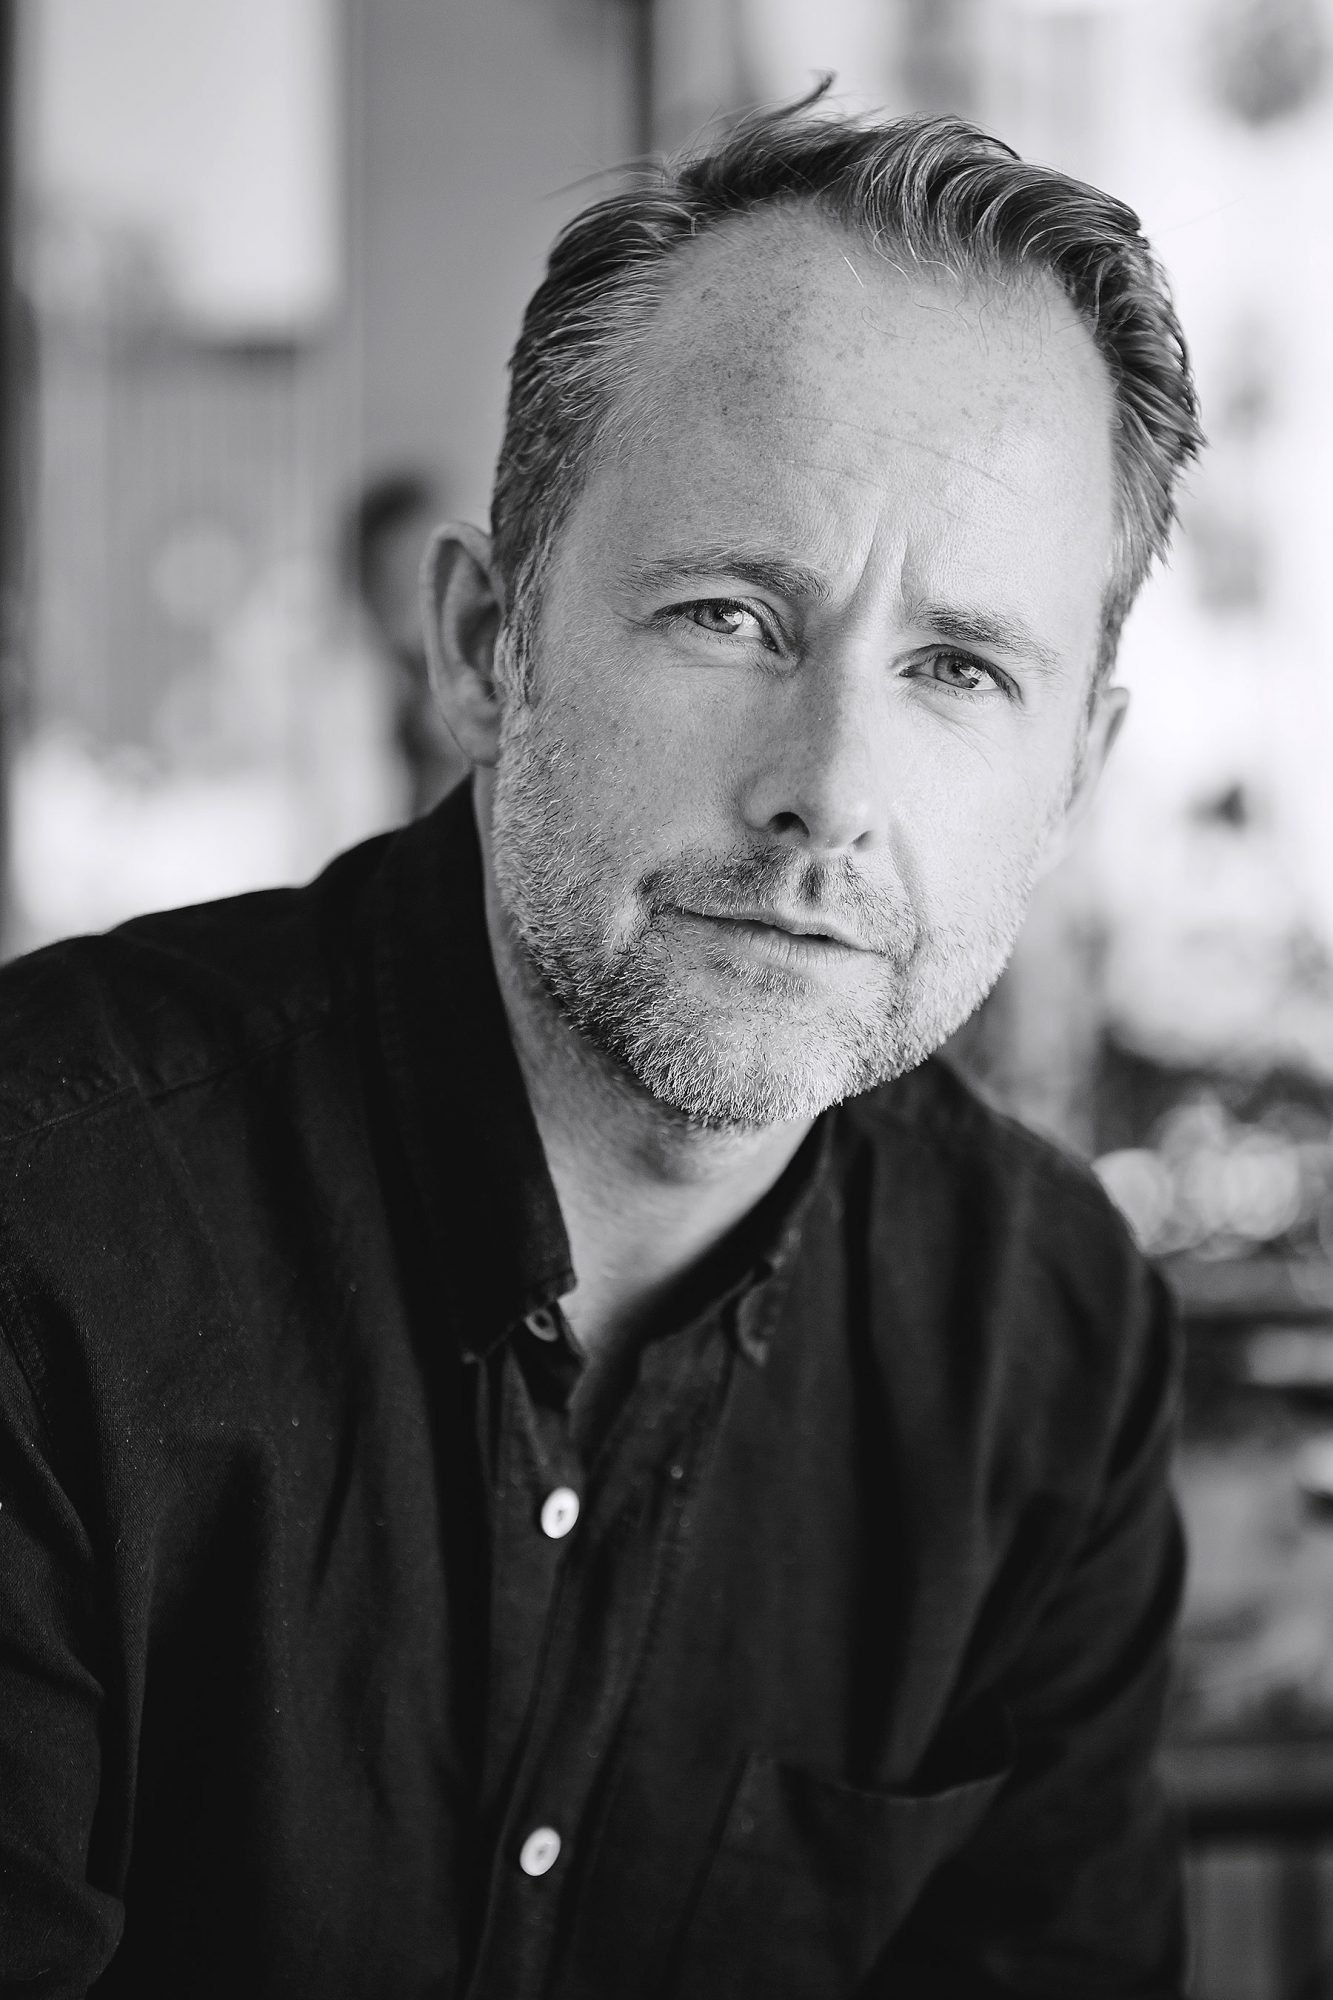 Outlander CastingBilly Boyd